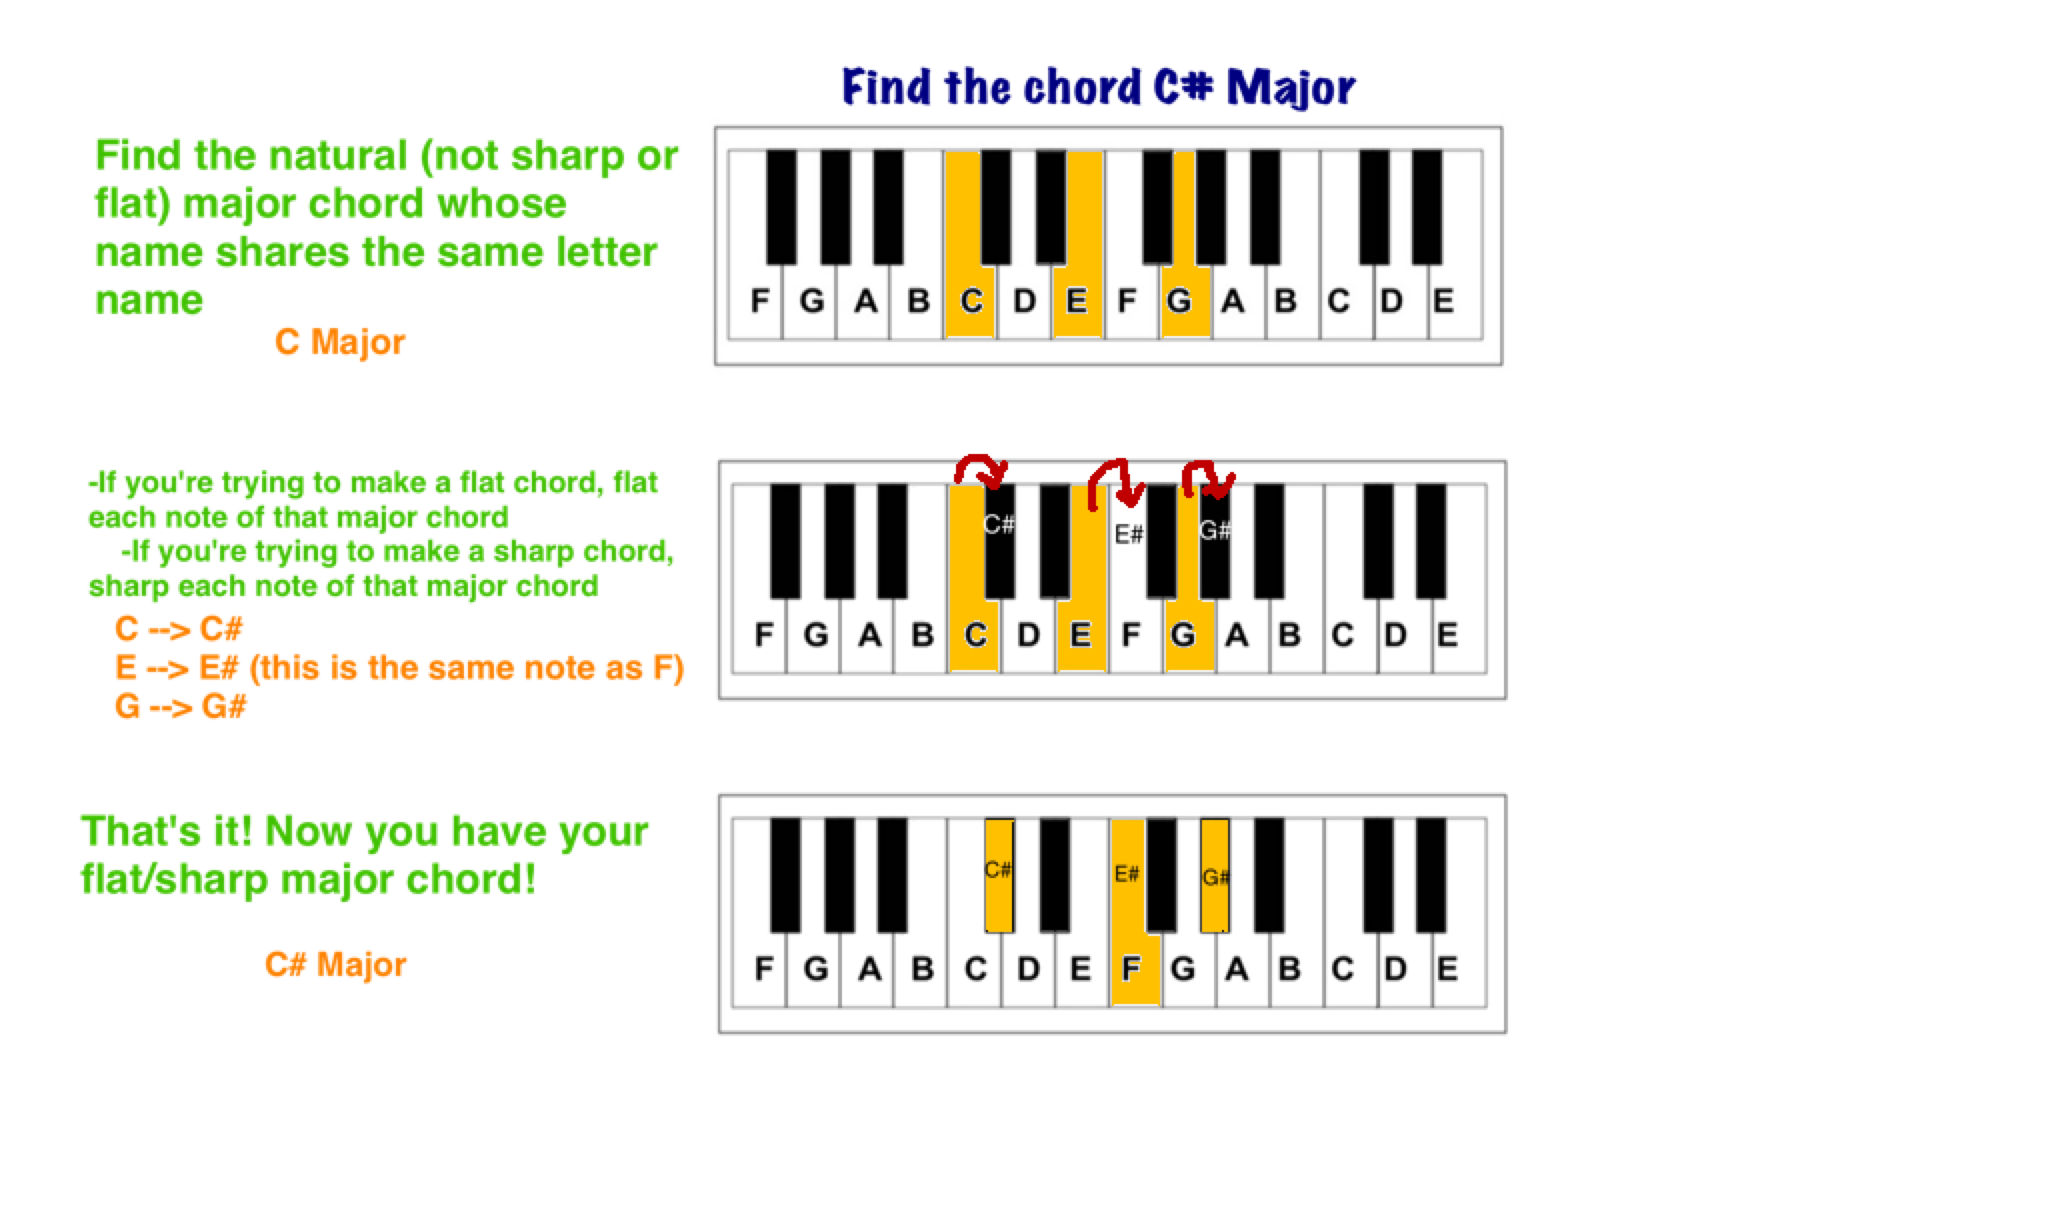 Find any major or minor chord part ii play jewish music find sharp or flat major chords infographic using c major as an example hexwebz Gallery